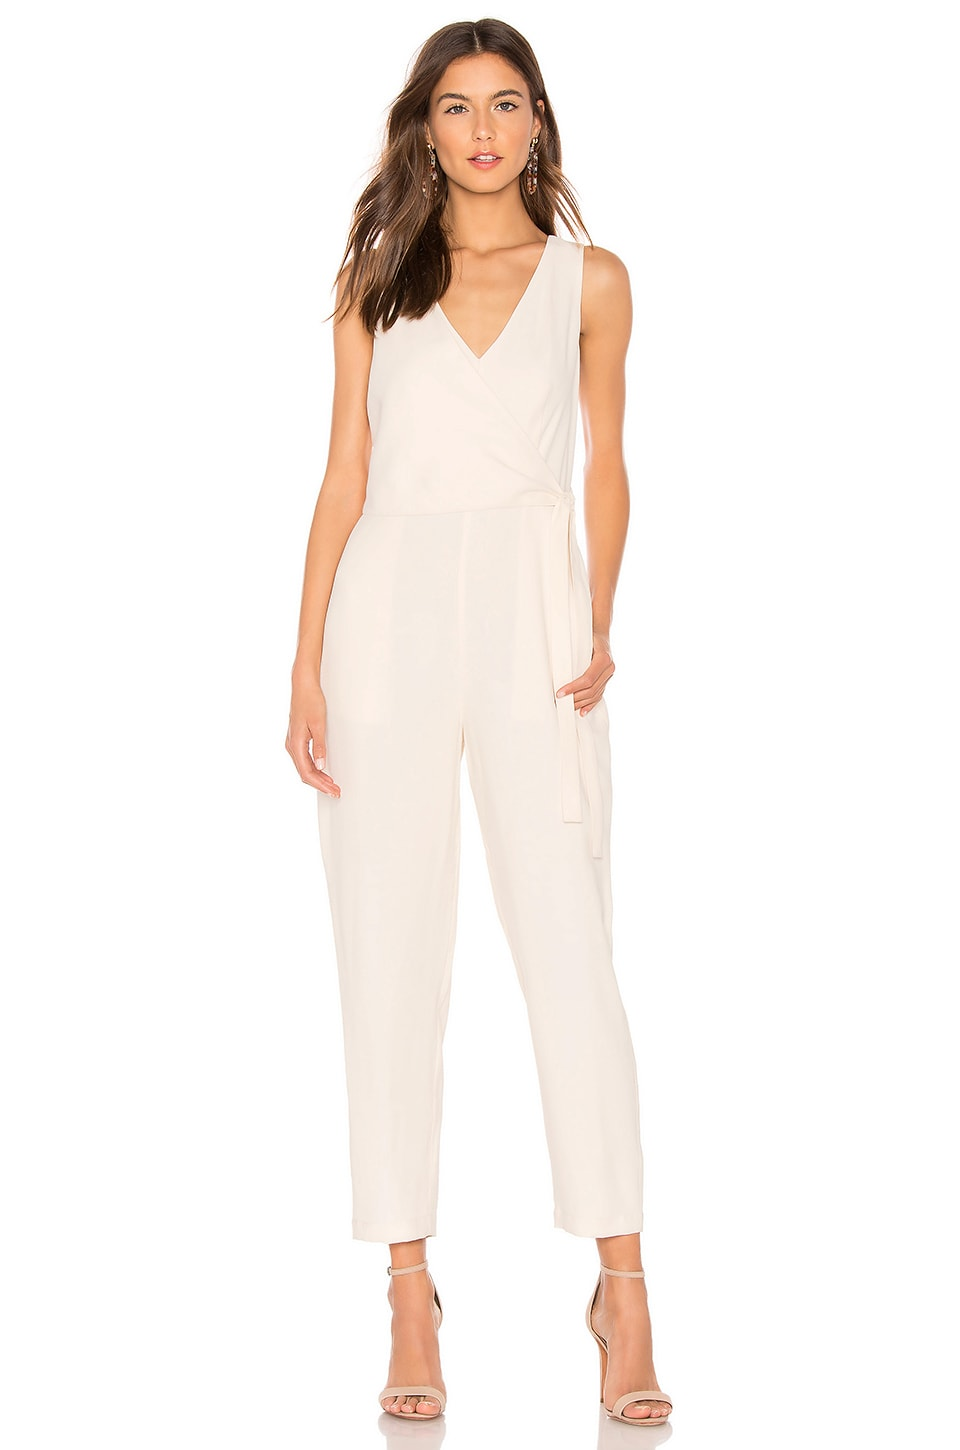 Wrap Front Jumpsuit             1. STATE                                                                                                                                         Sale price:                                                                       CA$ 91.87                                                                  Previous price:                                                                       CA$ 160.78 13